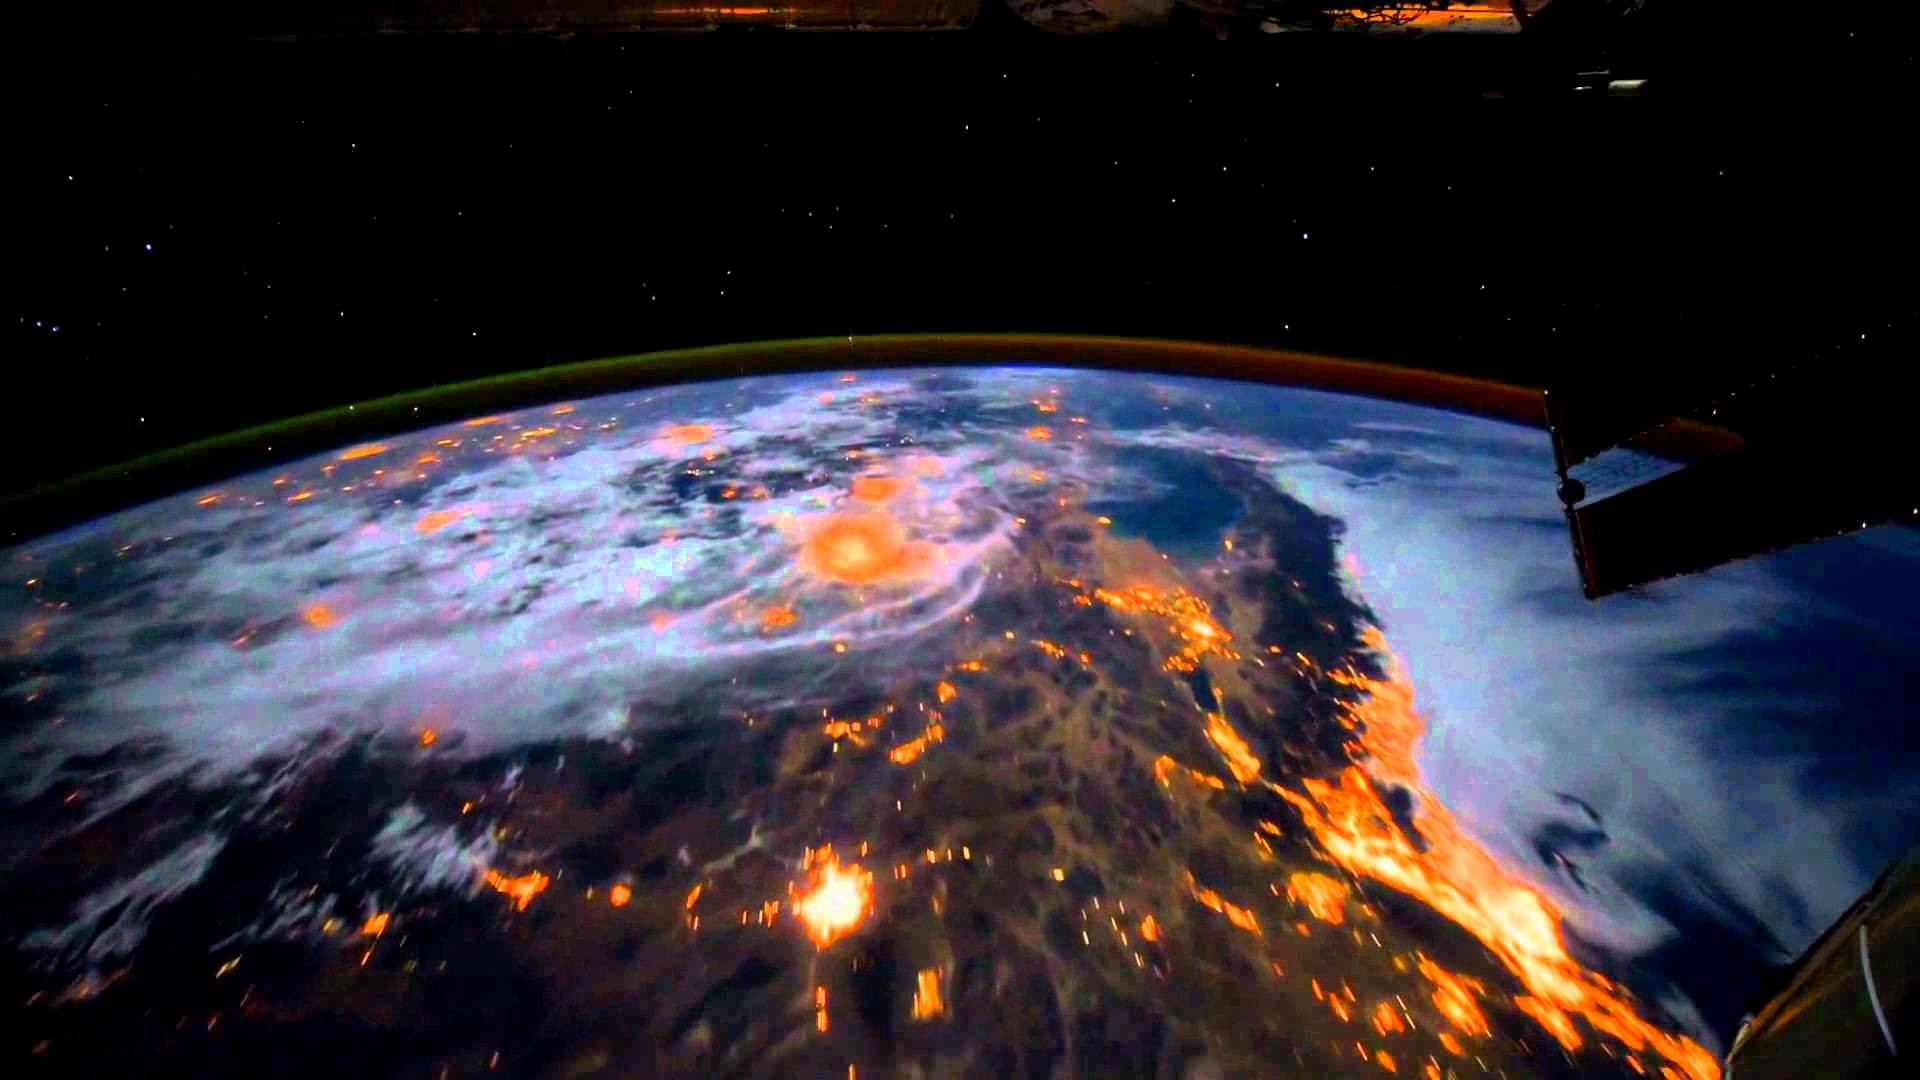 Res: 1920x1080, [Dreamscene] Animated Wallpaper - Earth View from the ISS - YouTube